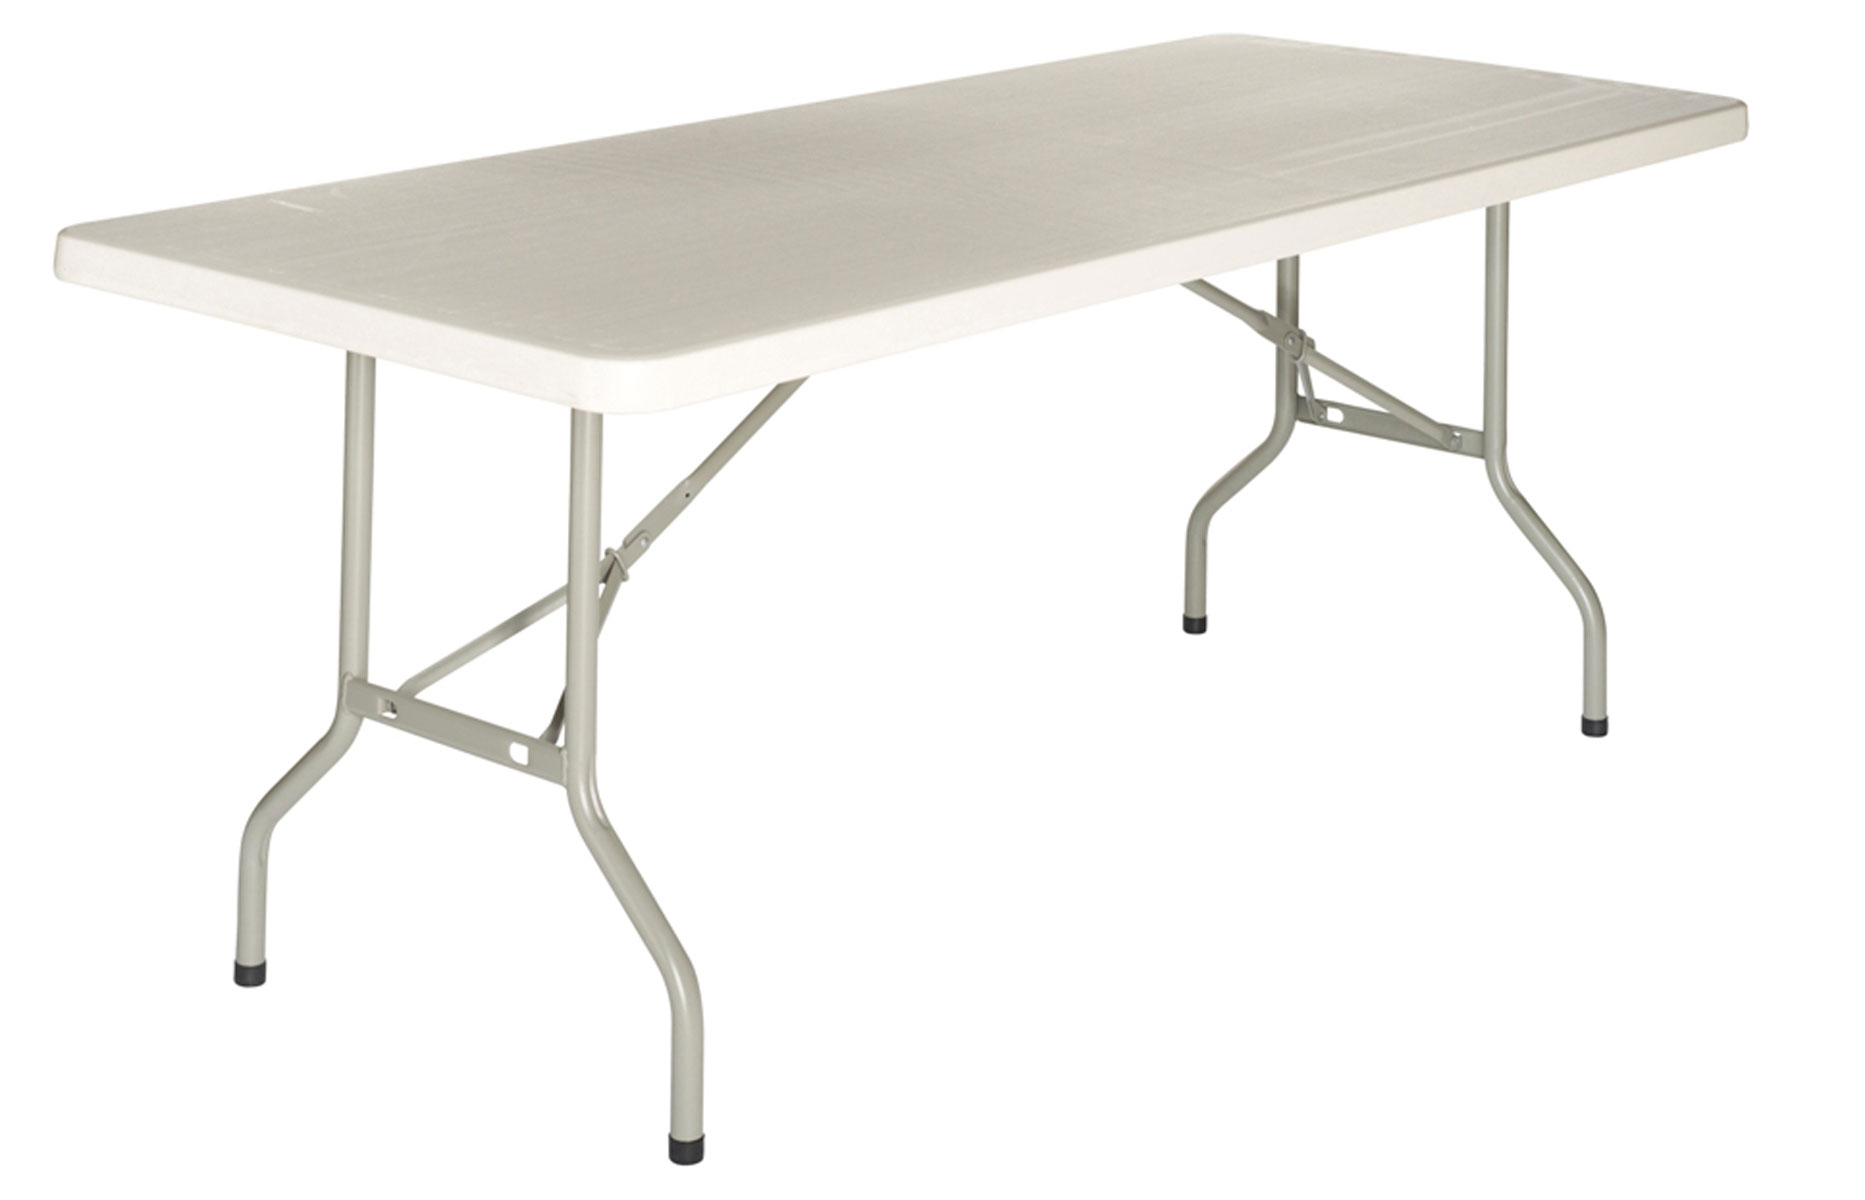 Table rabattable cuisine paris table pliante pas cher - Table massage pliante pas cher ...